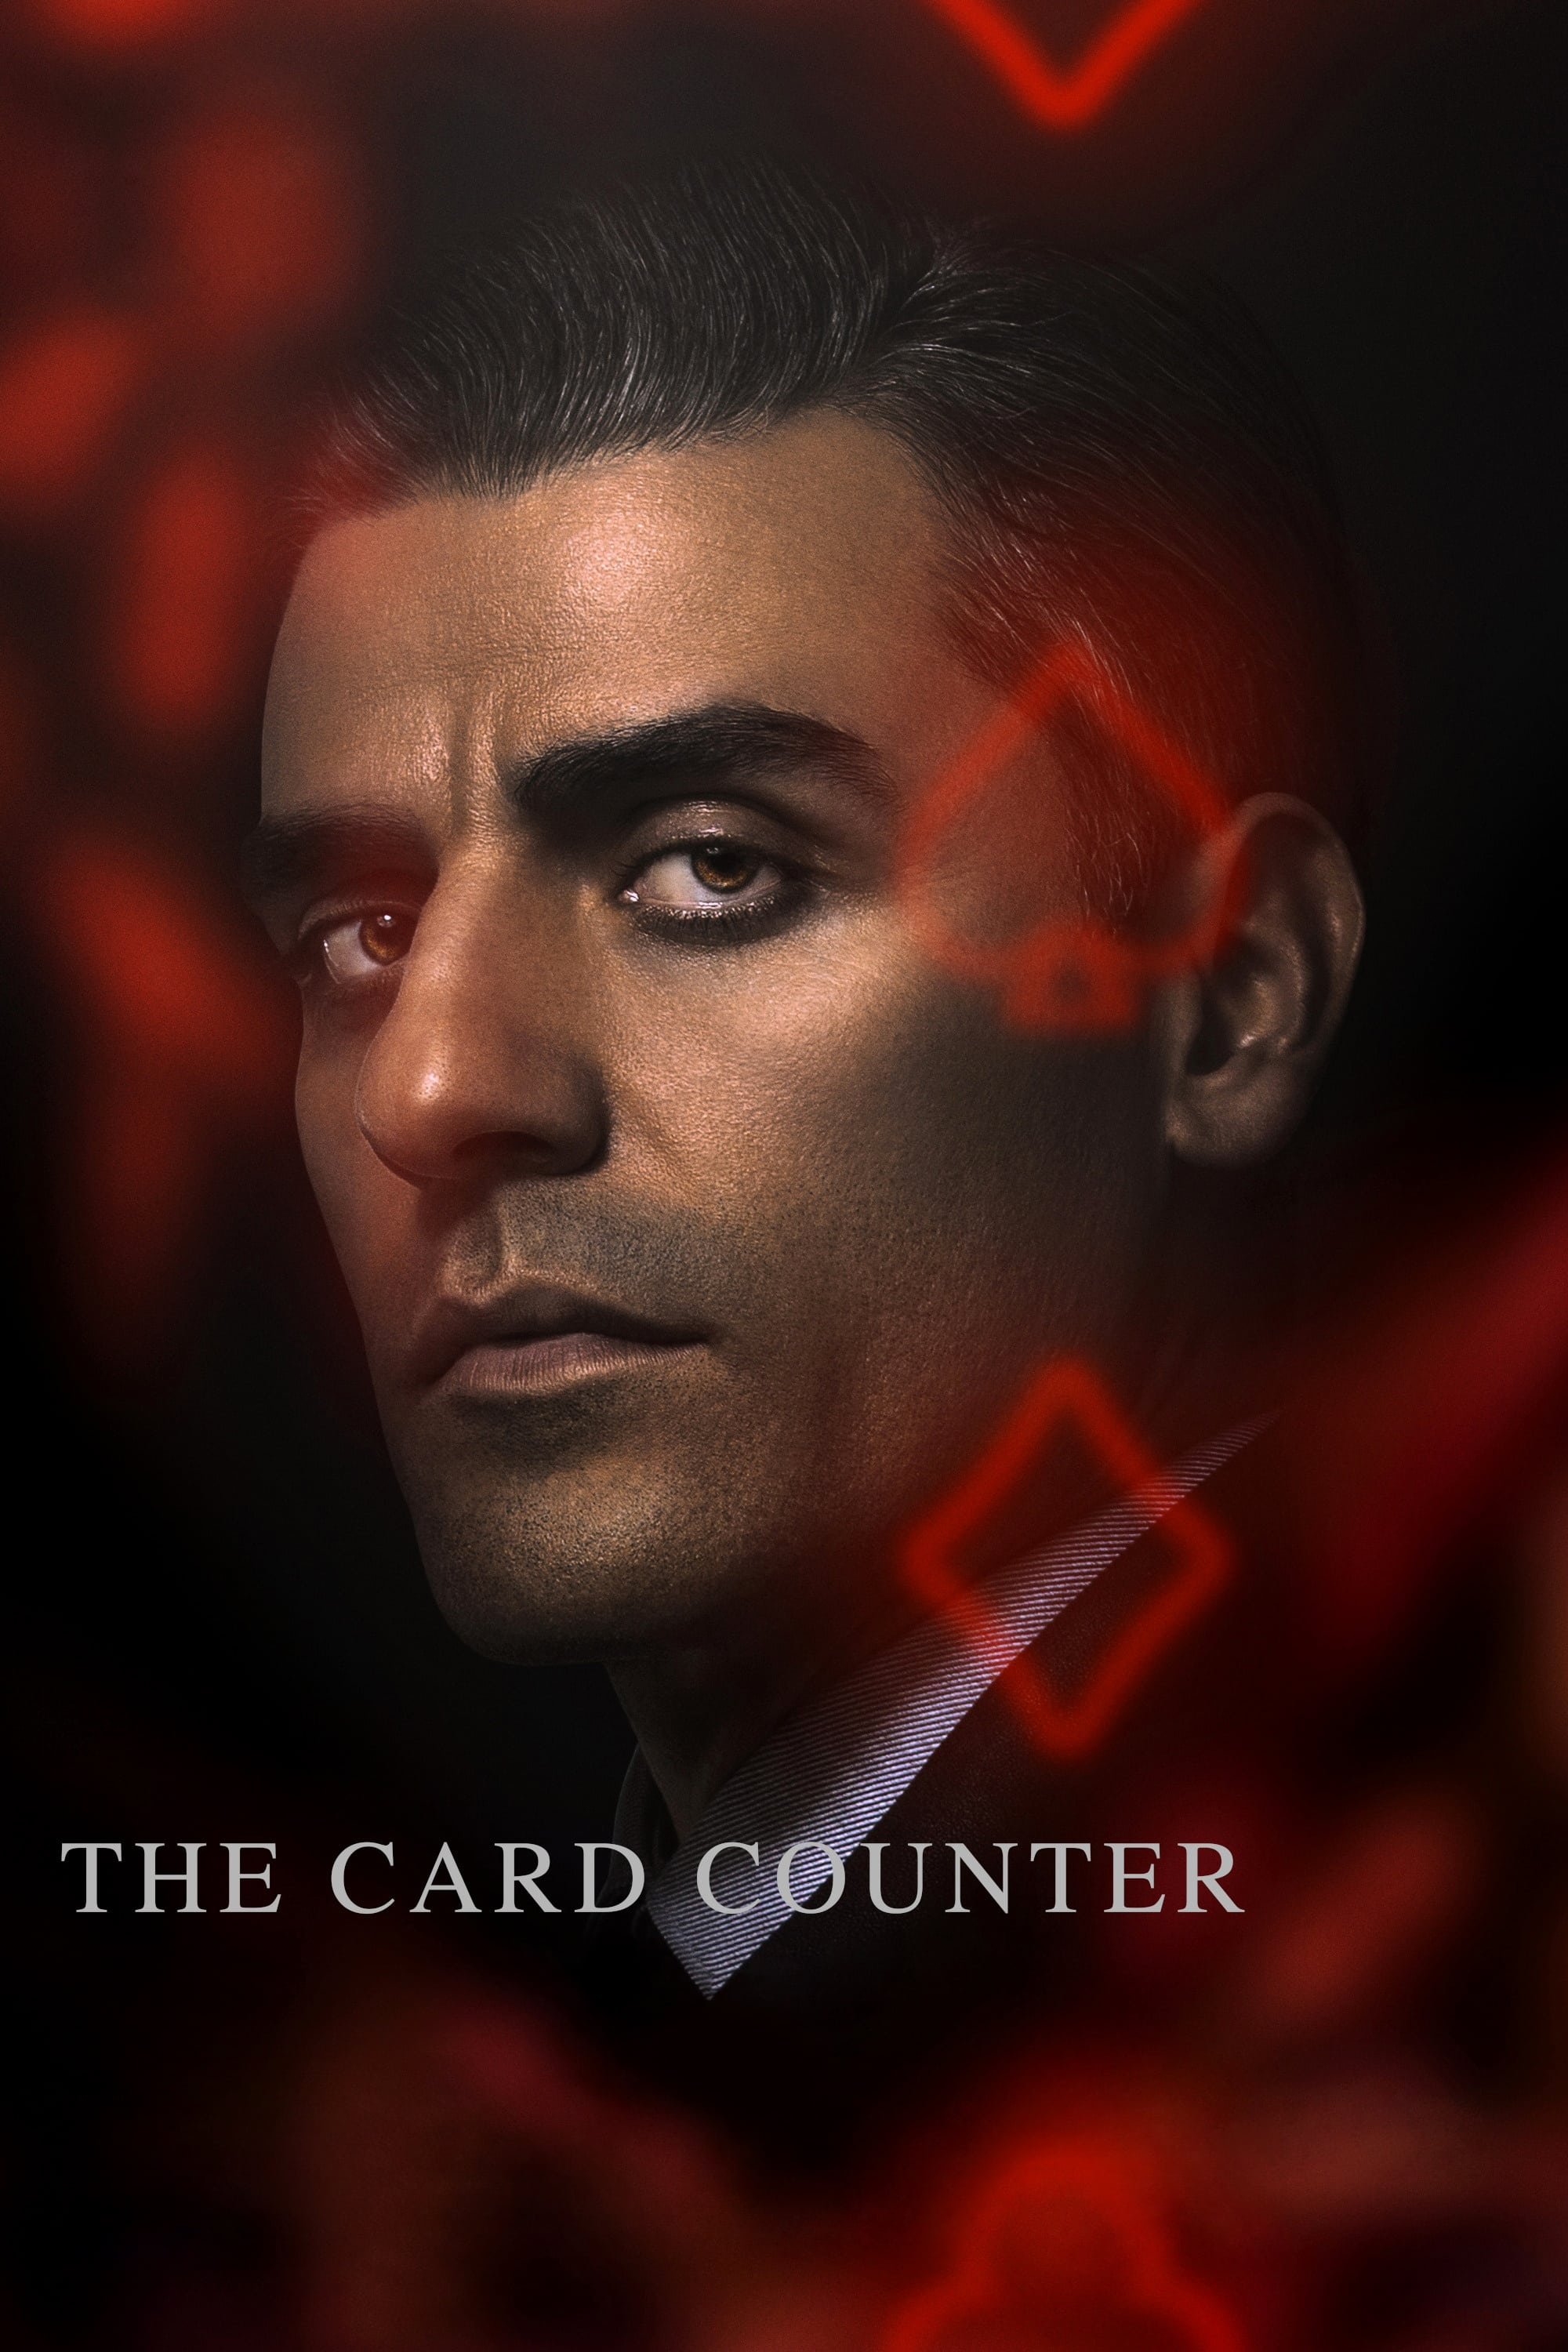 The Card Counter 2021 1080p Online